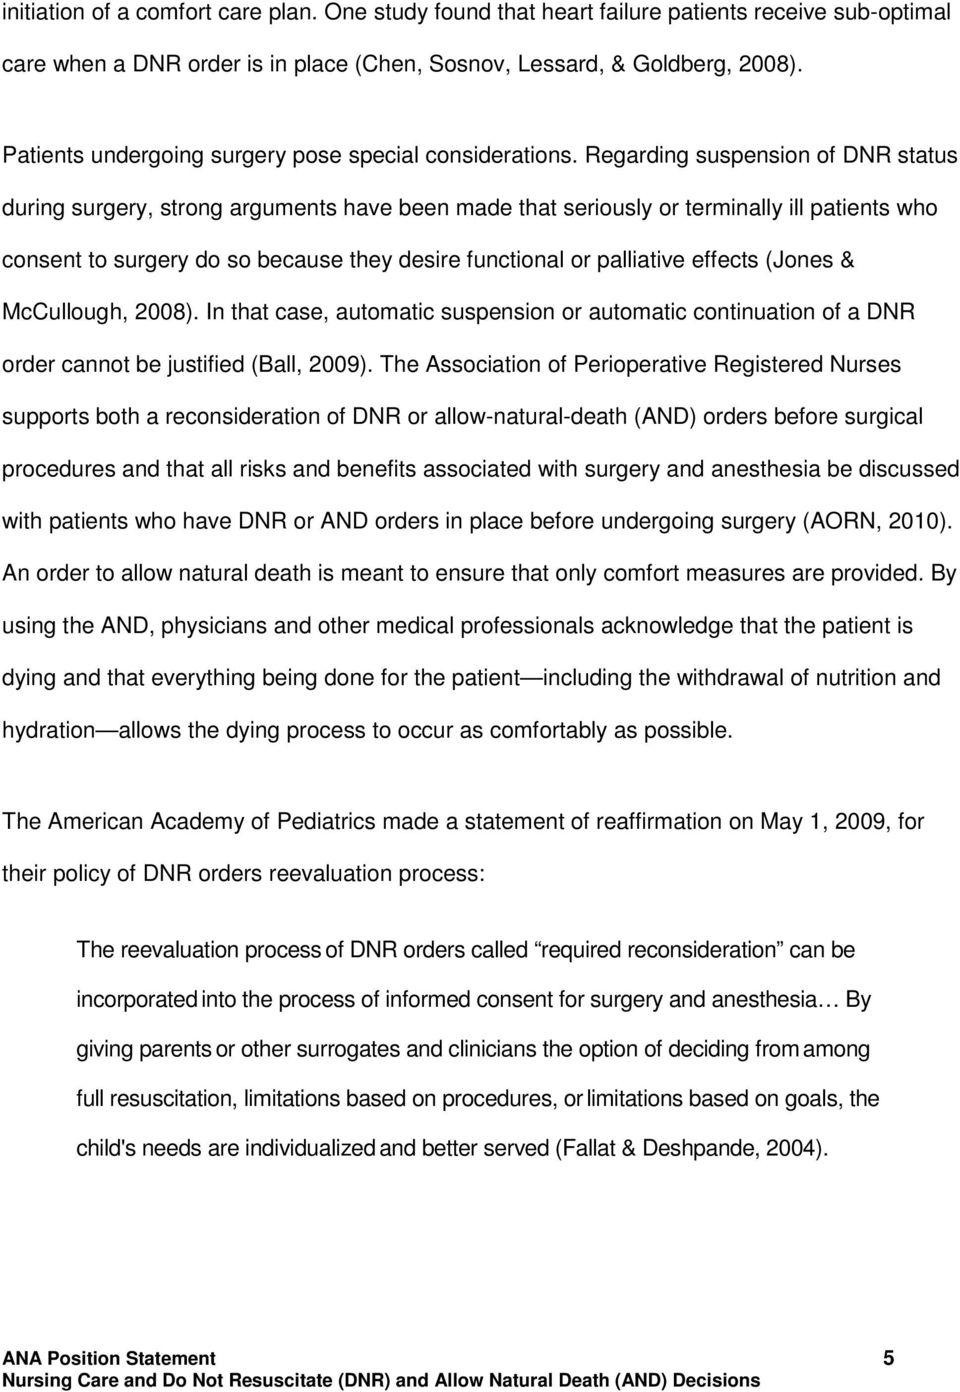 Regarding suspension of DNR status during surgery, strong arguments have been made that seriously or terminally ill patients who consent to surgery do so because they desire functional or palliative